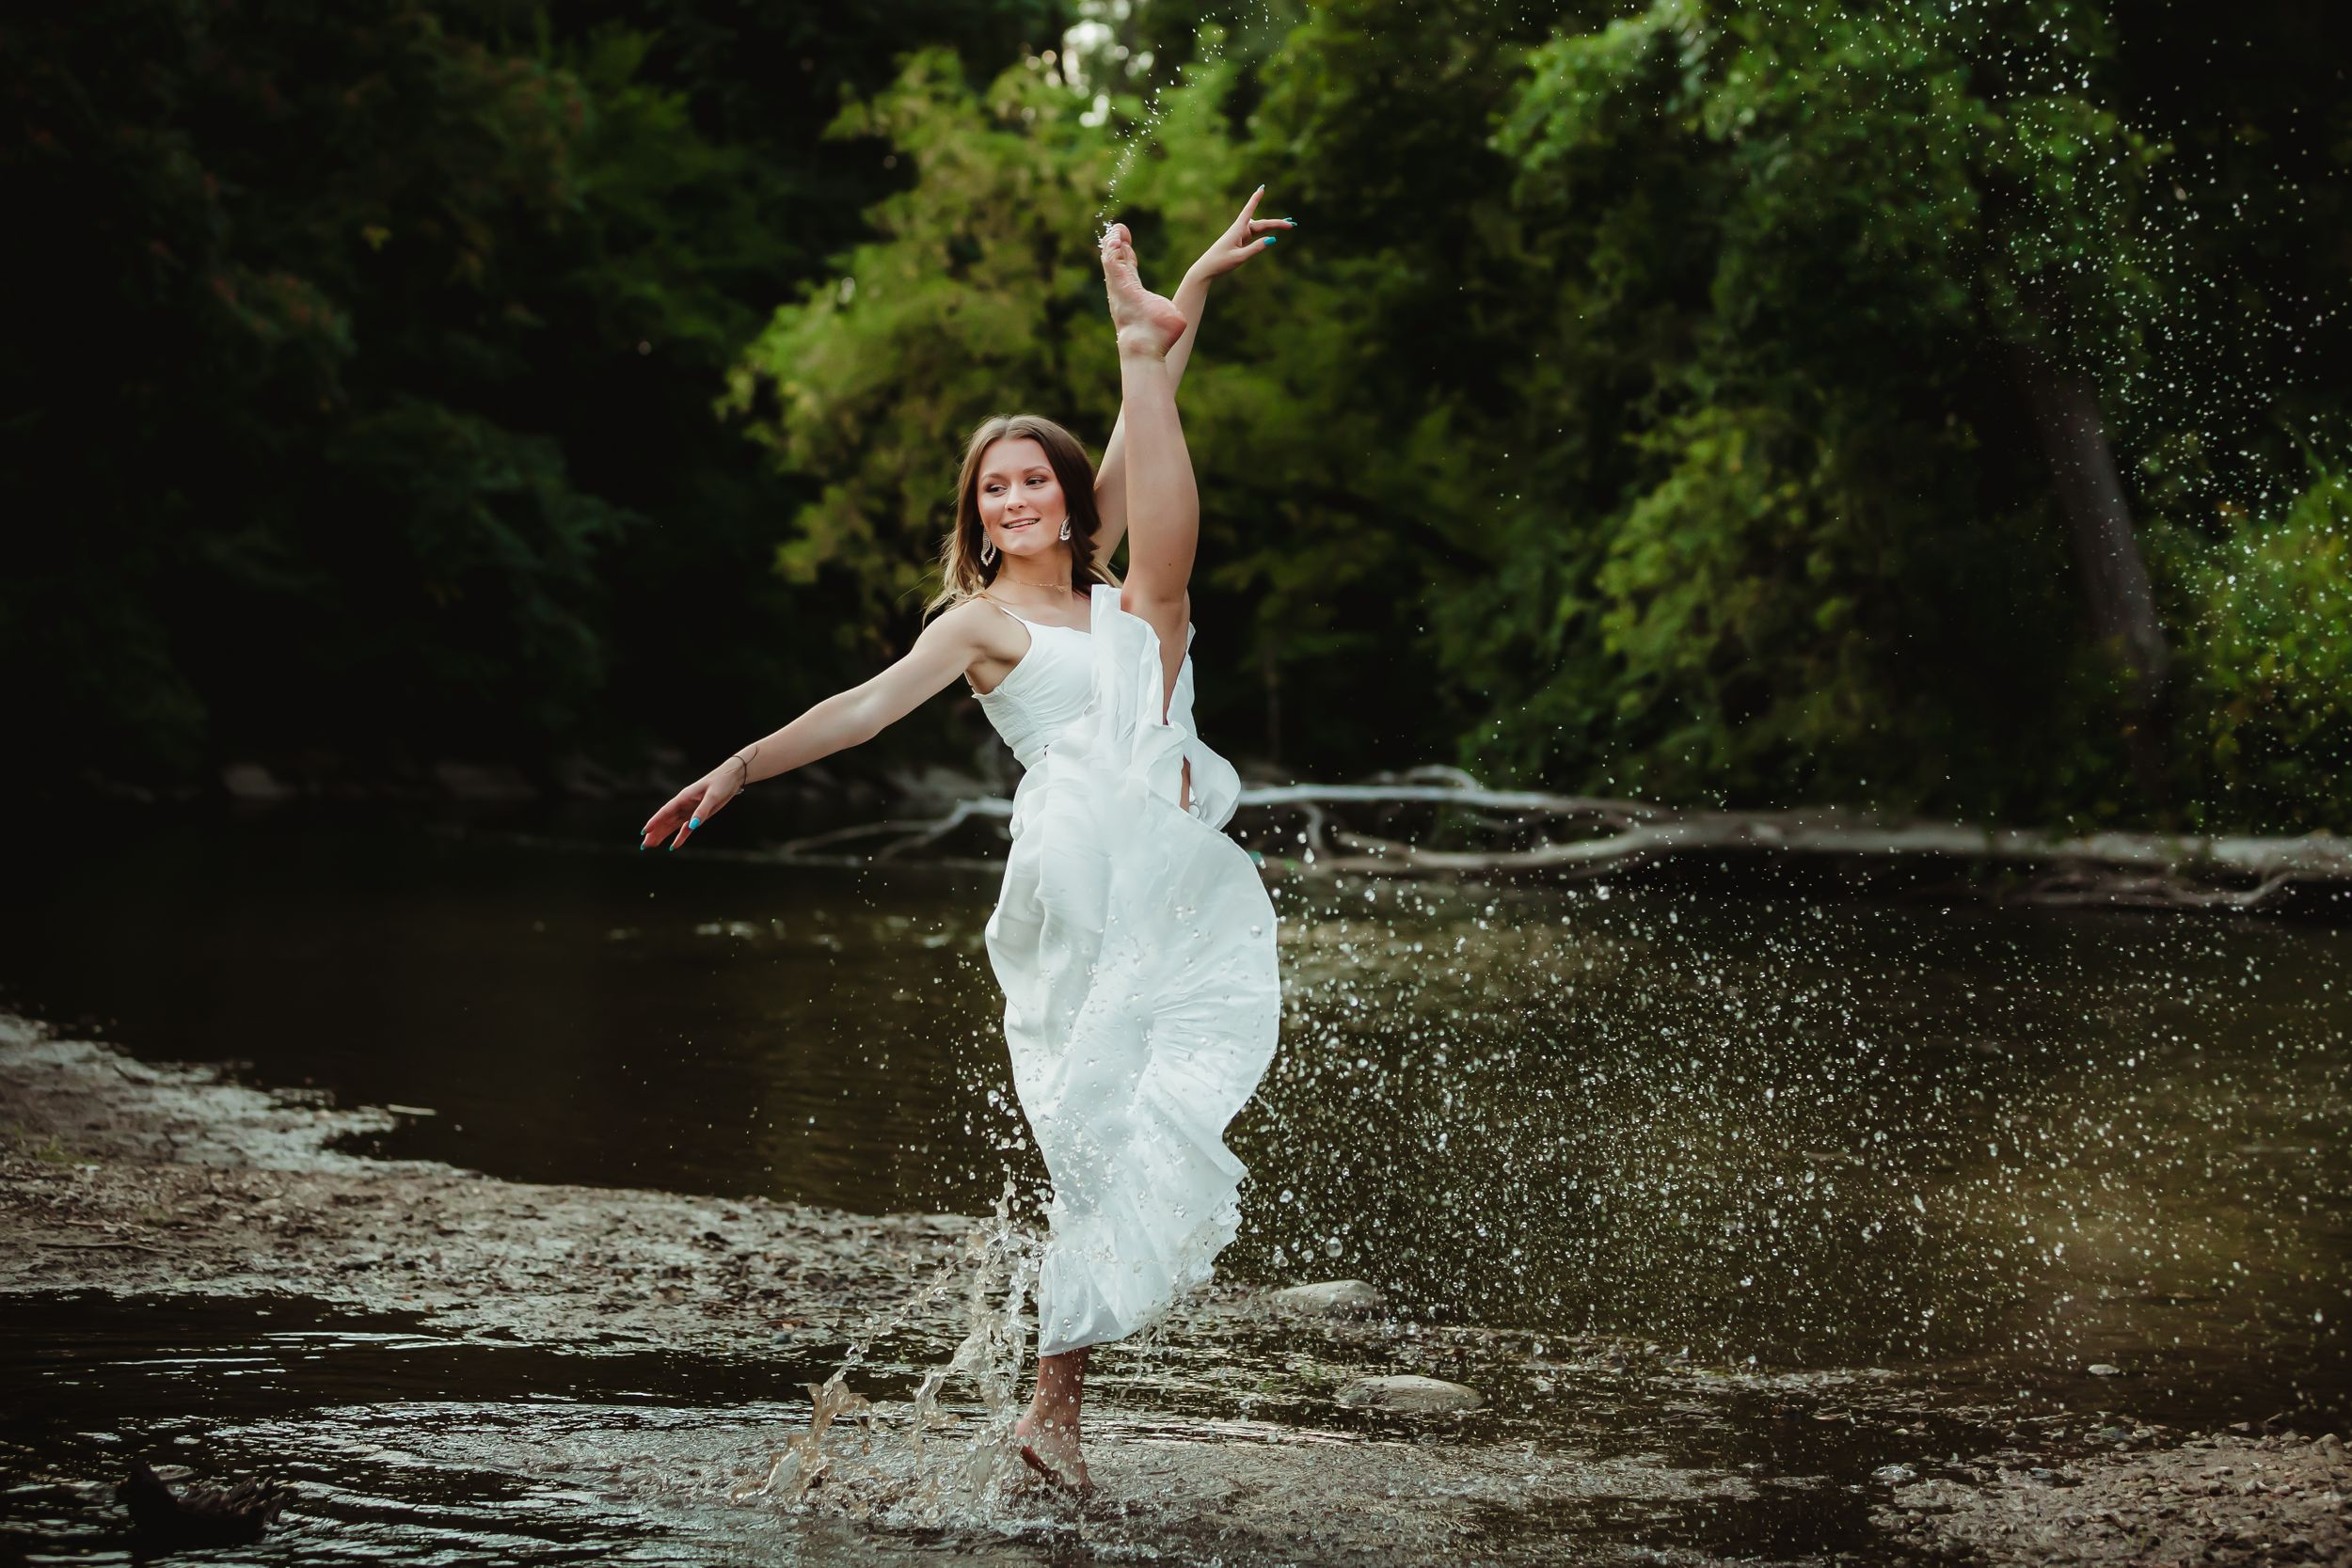 Teenage girl in a white dress kicking her leg up into a dance pose in the river. Water droplets follow the path.